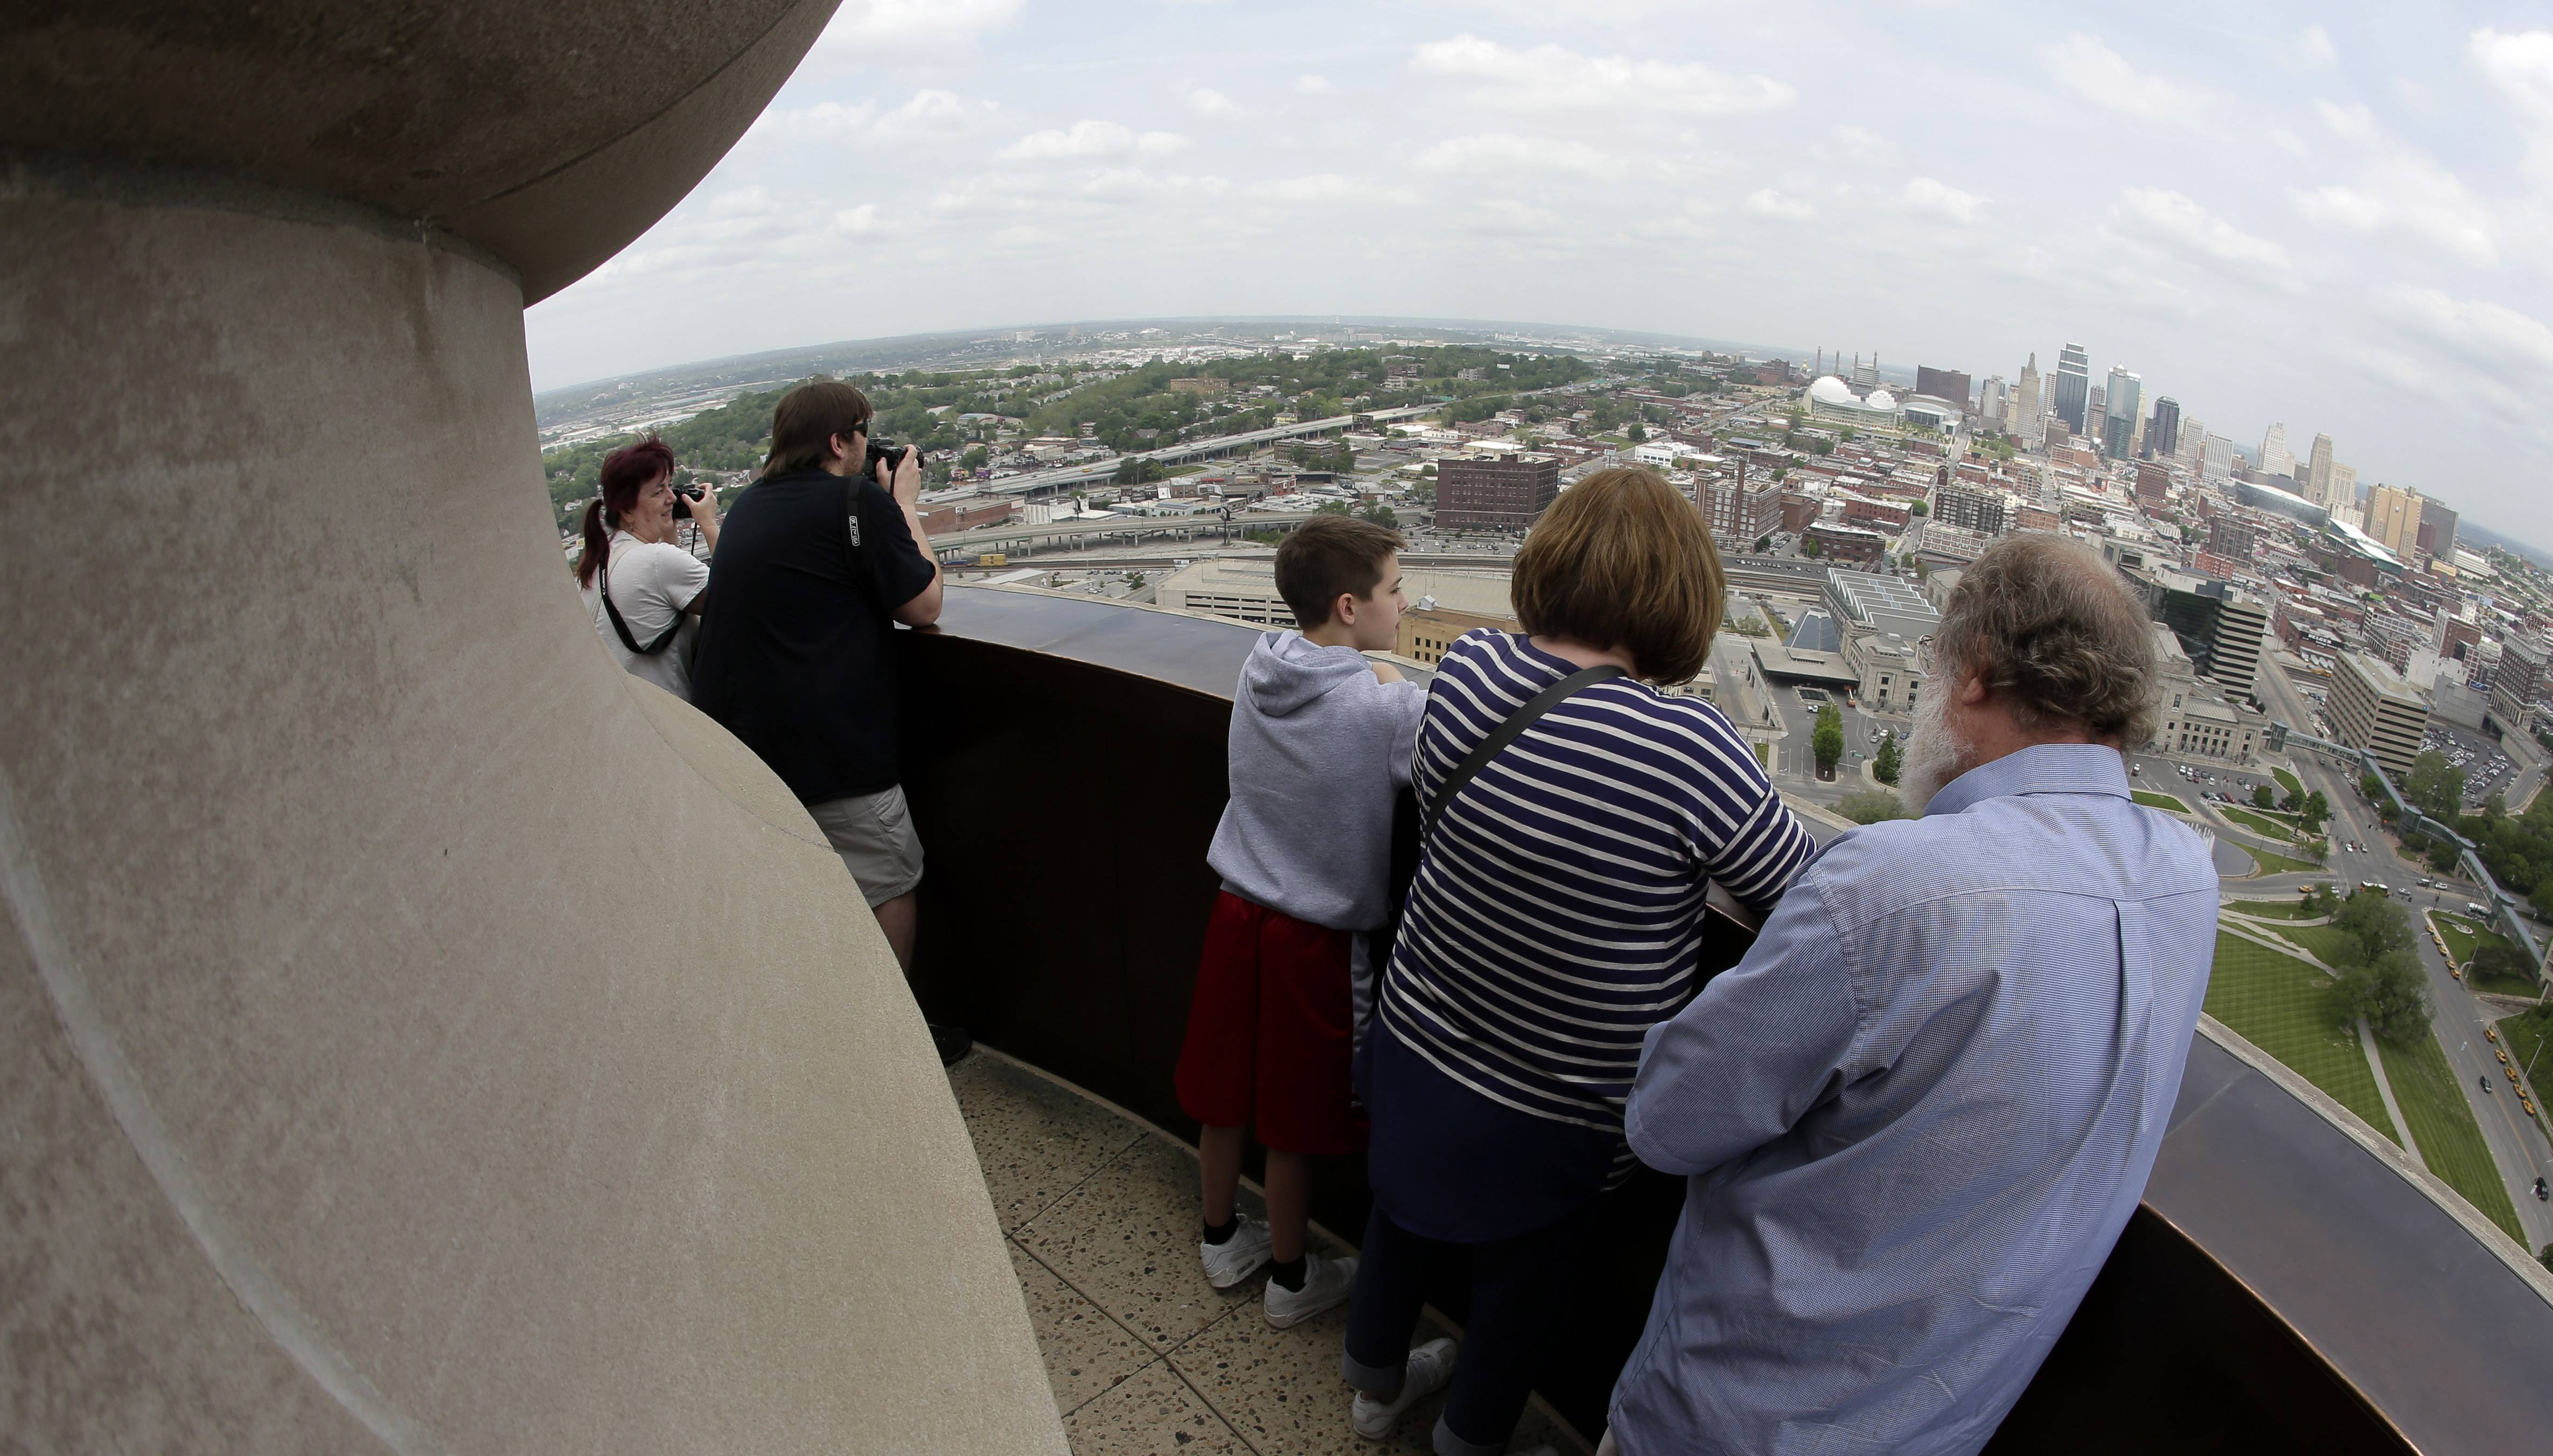 Visitors survey the Kansas City, Mo., skyline from the top of the 277-foot Liberty Memorial Tower above the plaza at the National World War I Museum.